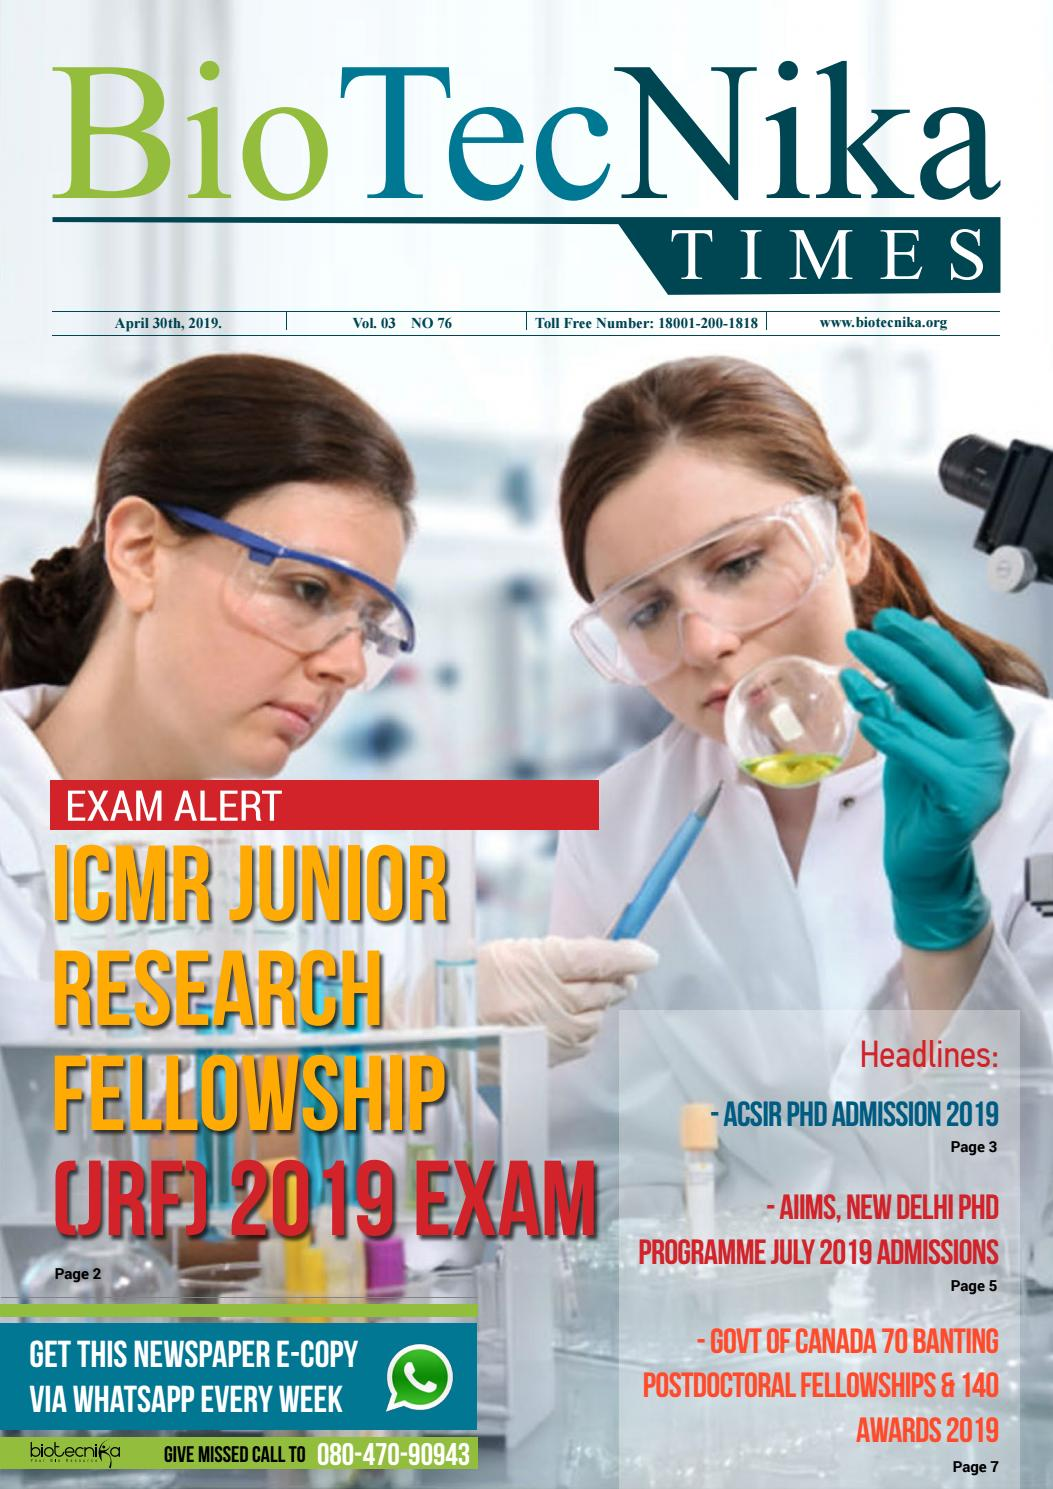 Biotecnika Times Newspaper 30th April 2019 Edition by